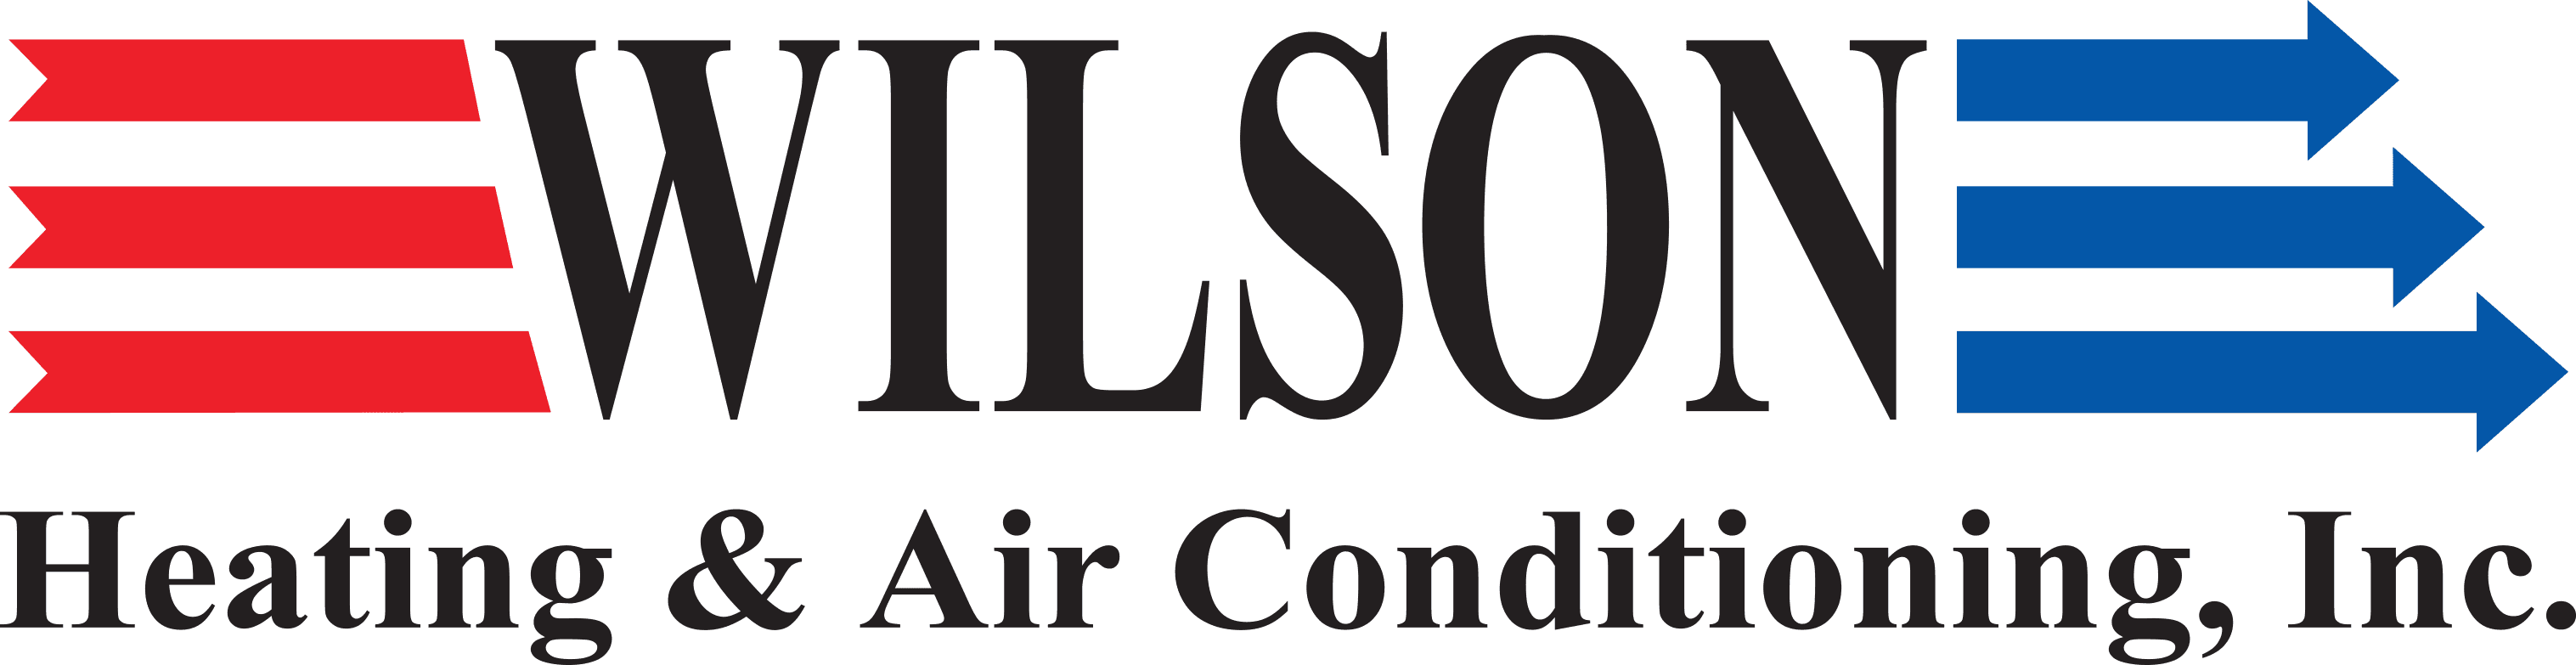 Wilson Heating & Air Conditioning, Inc - Logo